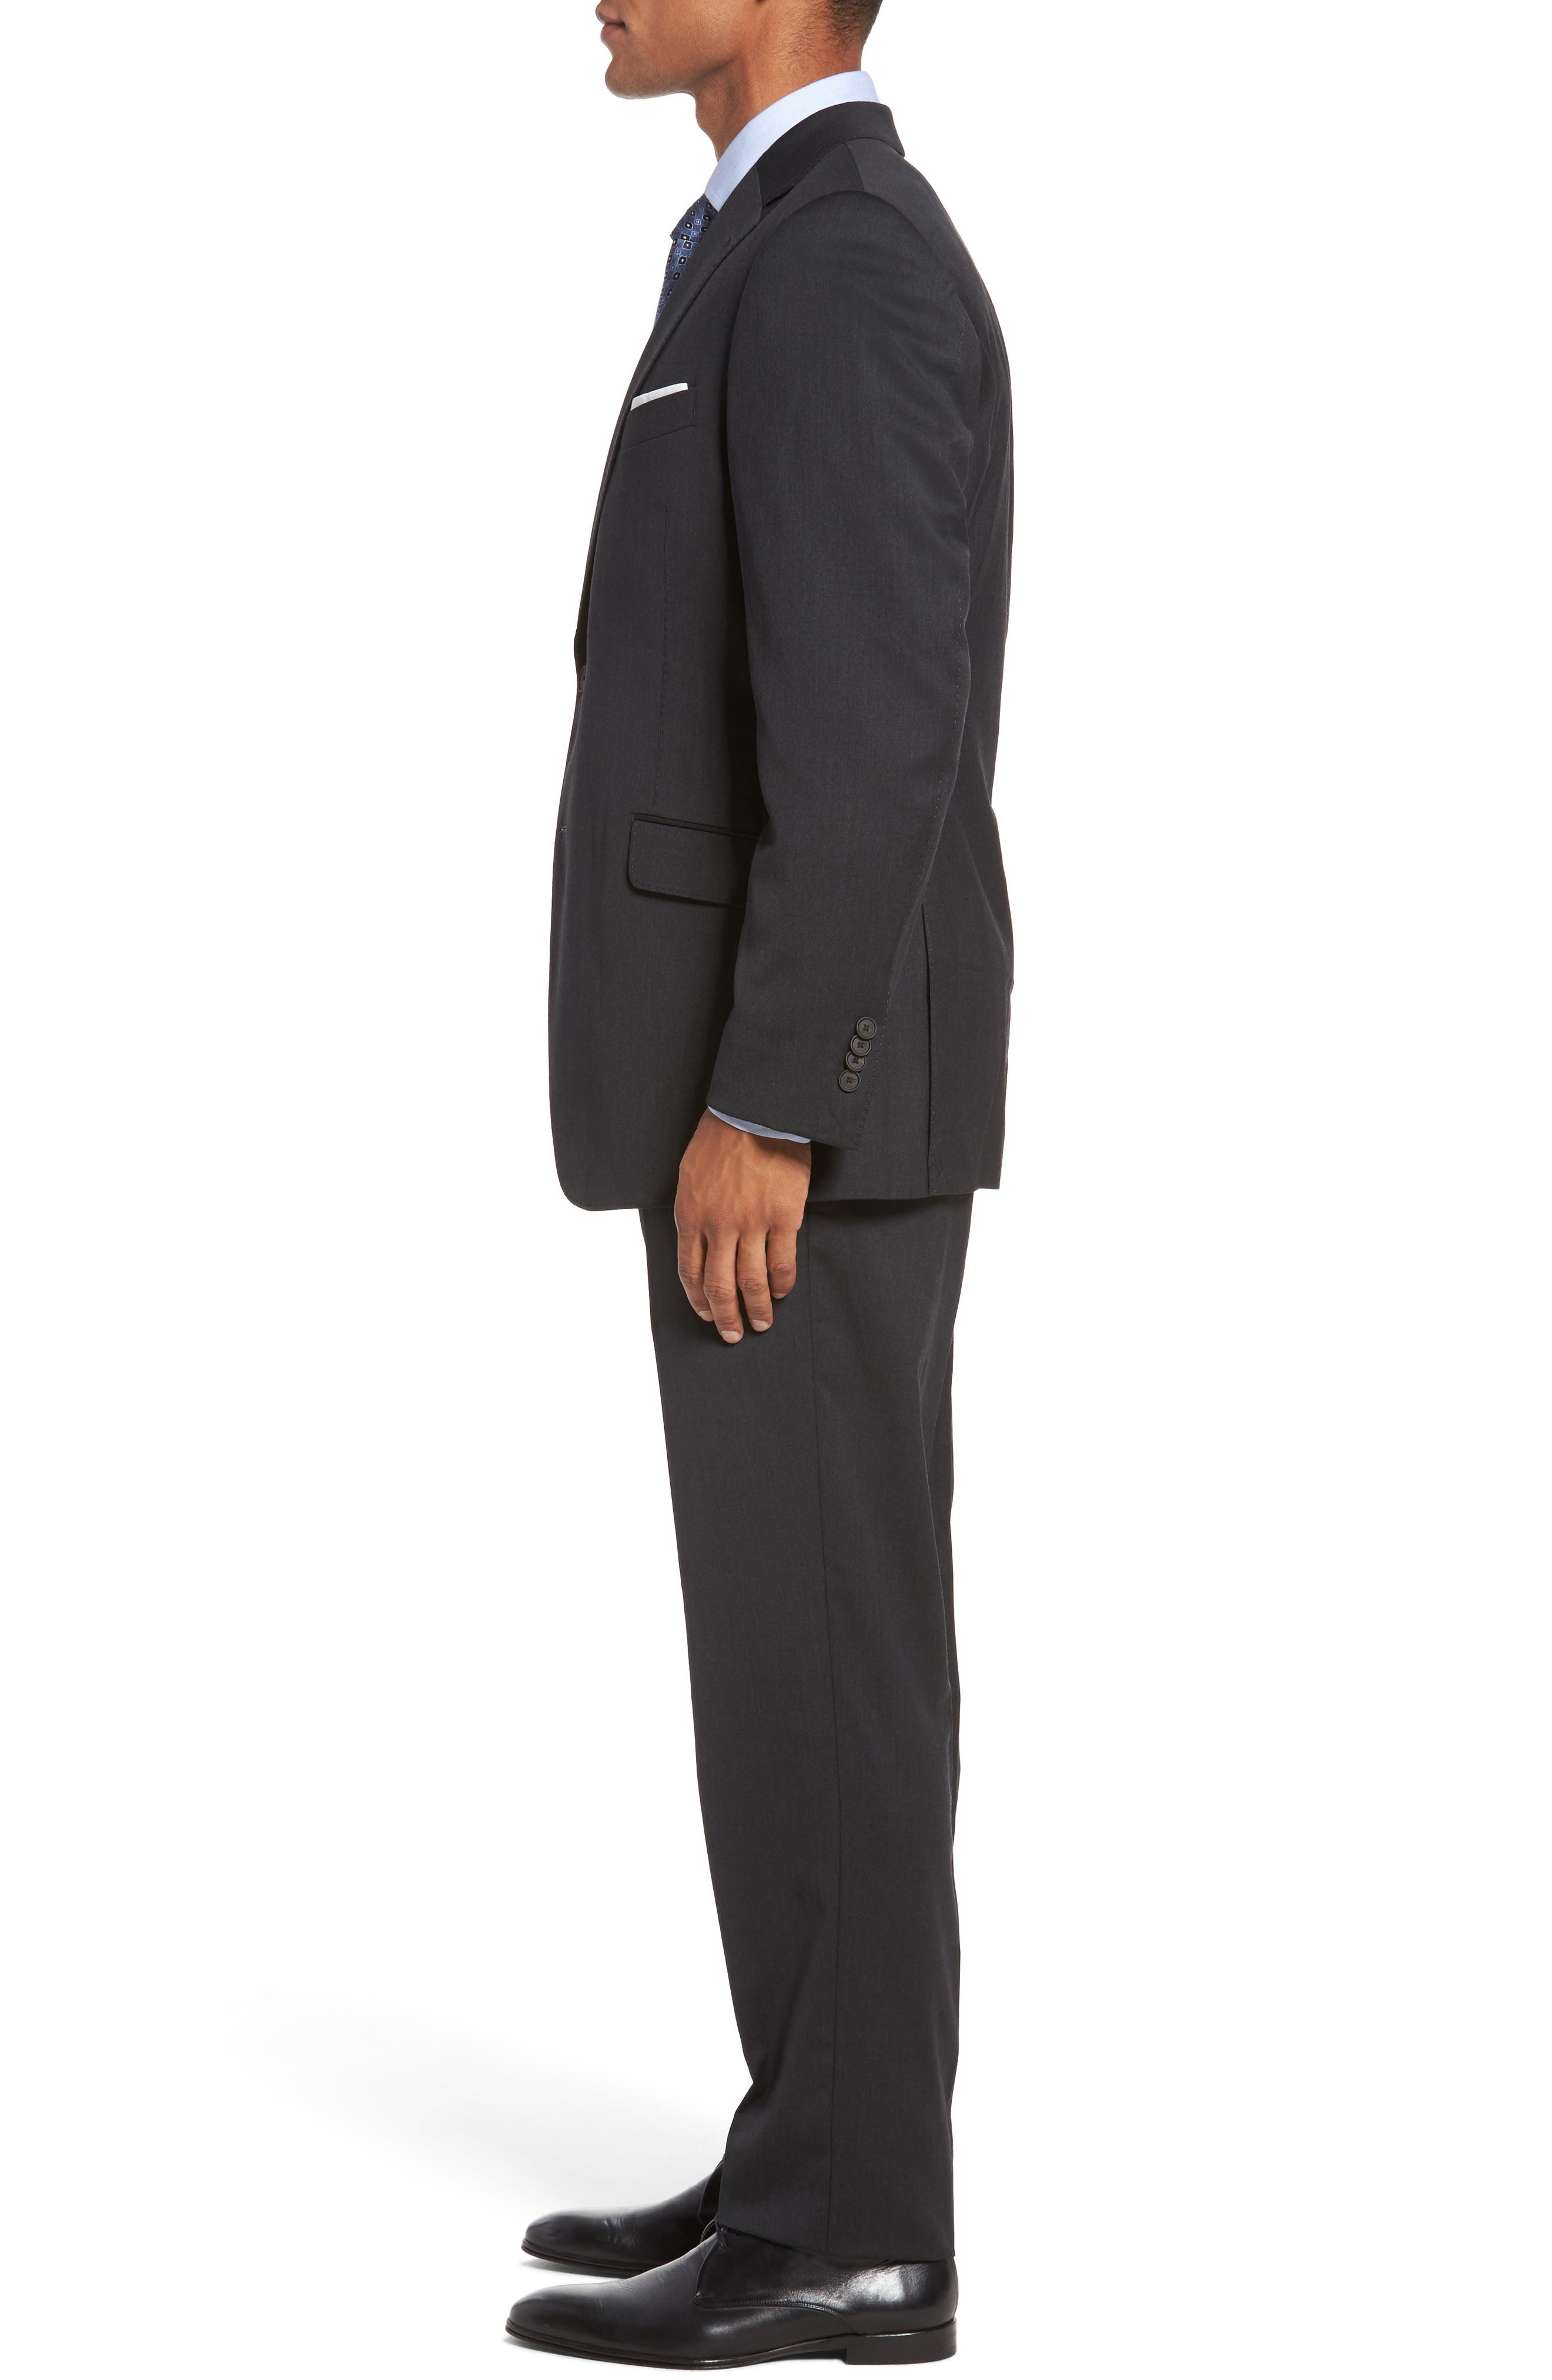 Keidis Aim Classic Fit Stretch Wool Suit,                             Alternate thumbnail 3, color,                             Charcoal